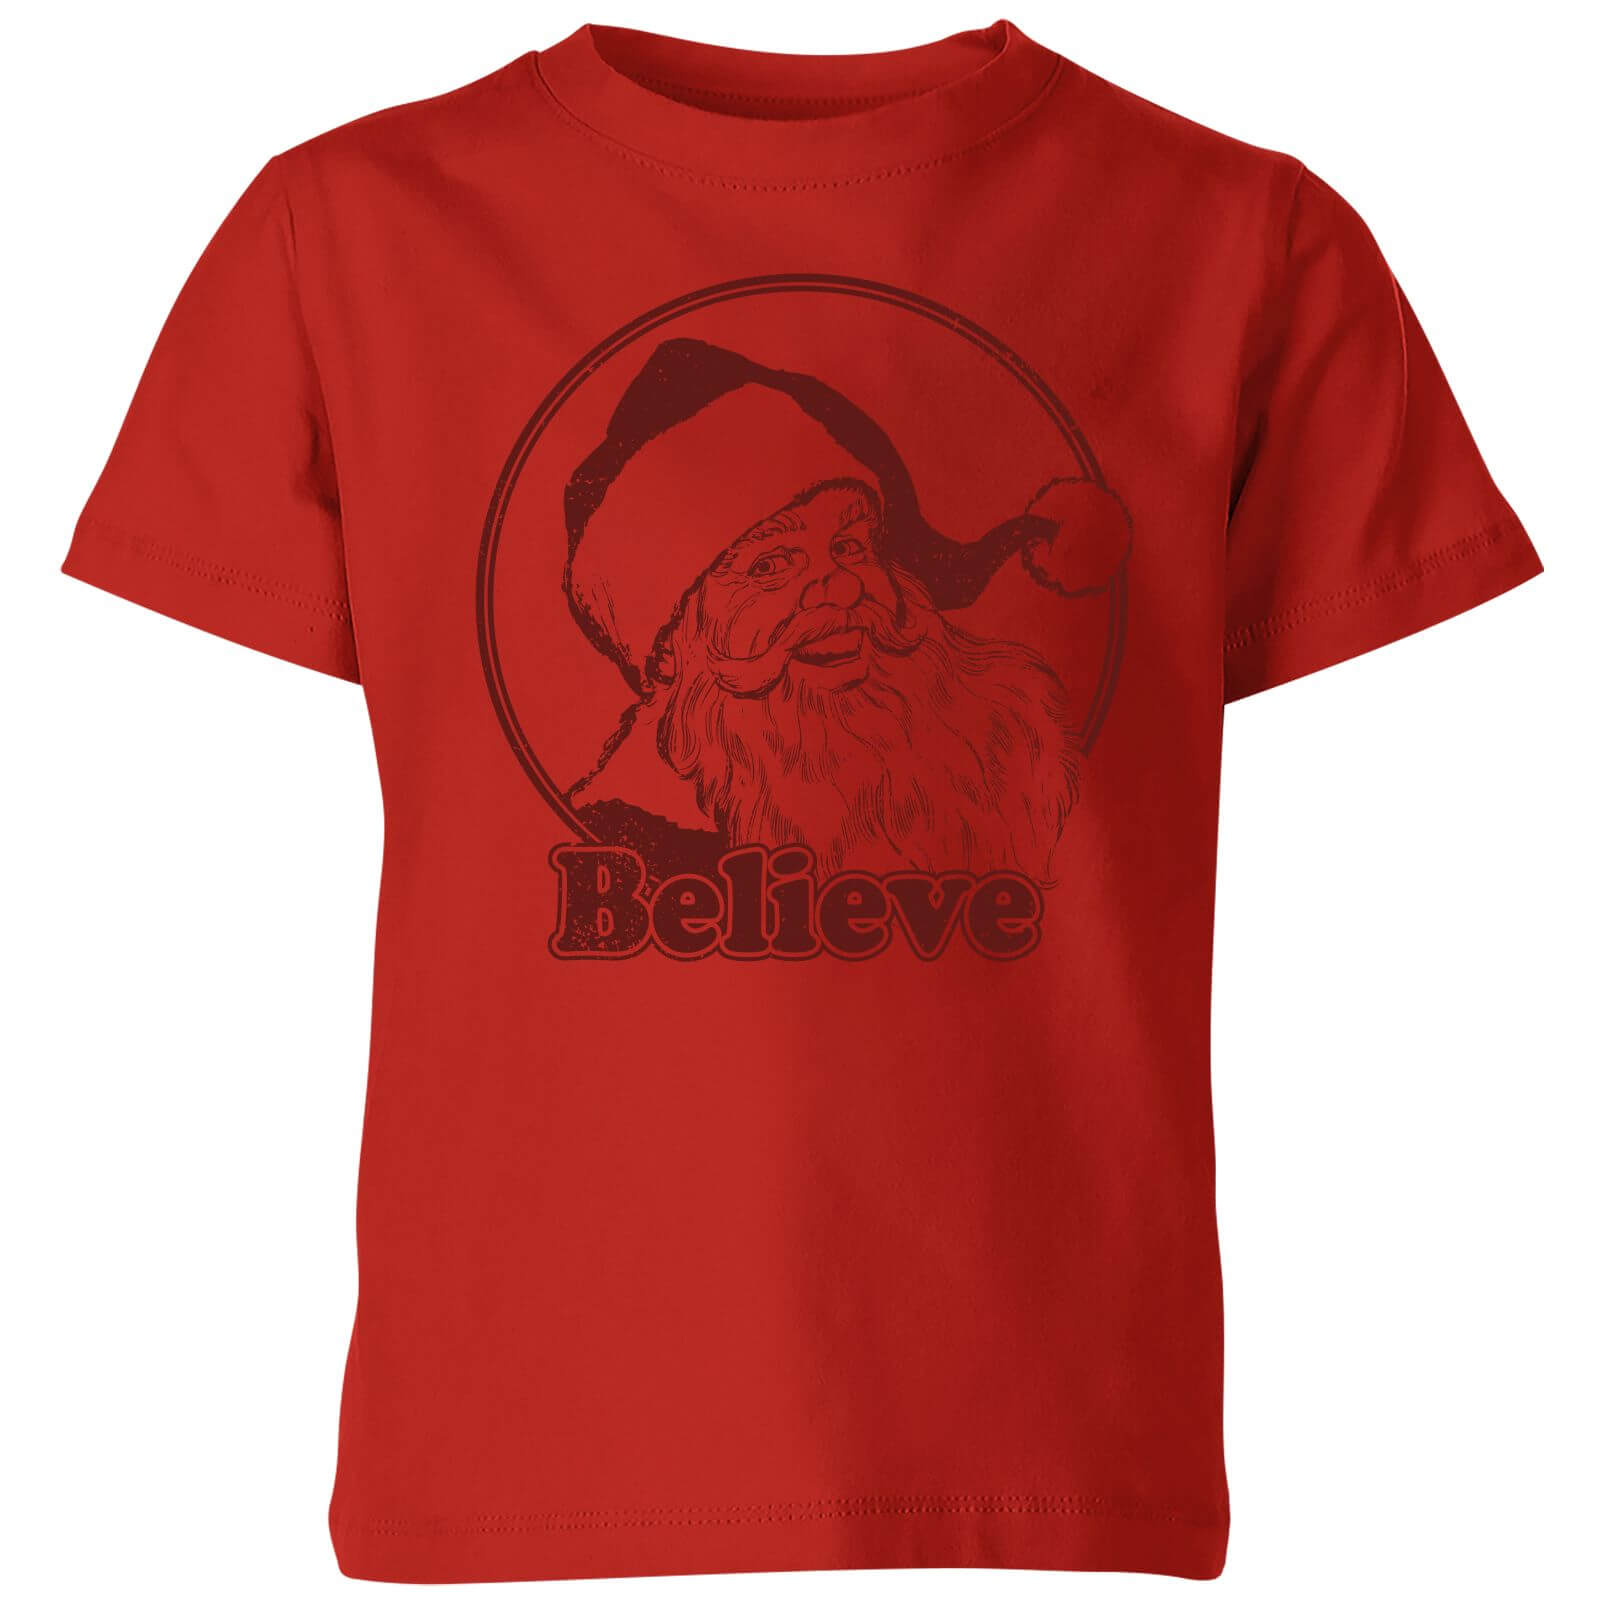 Believe Red Kids